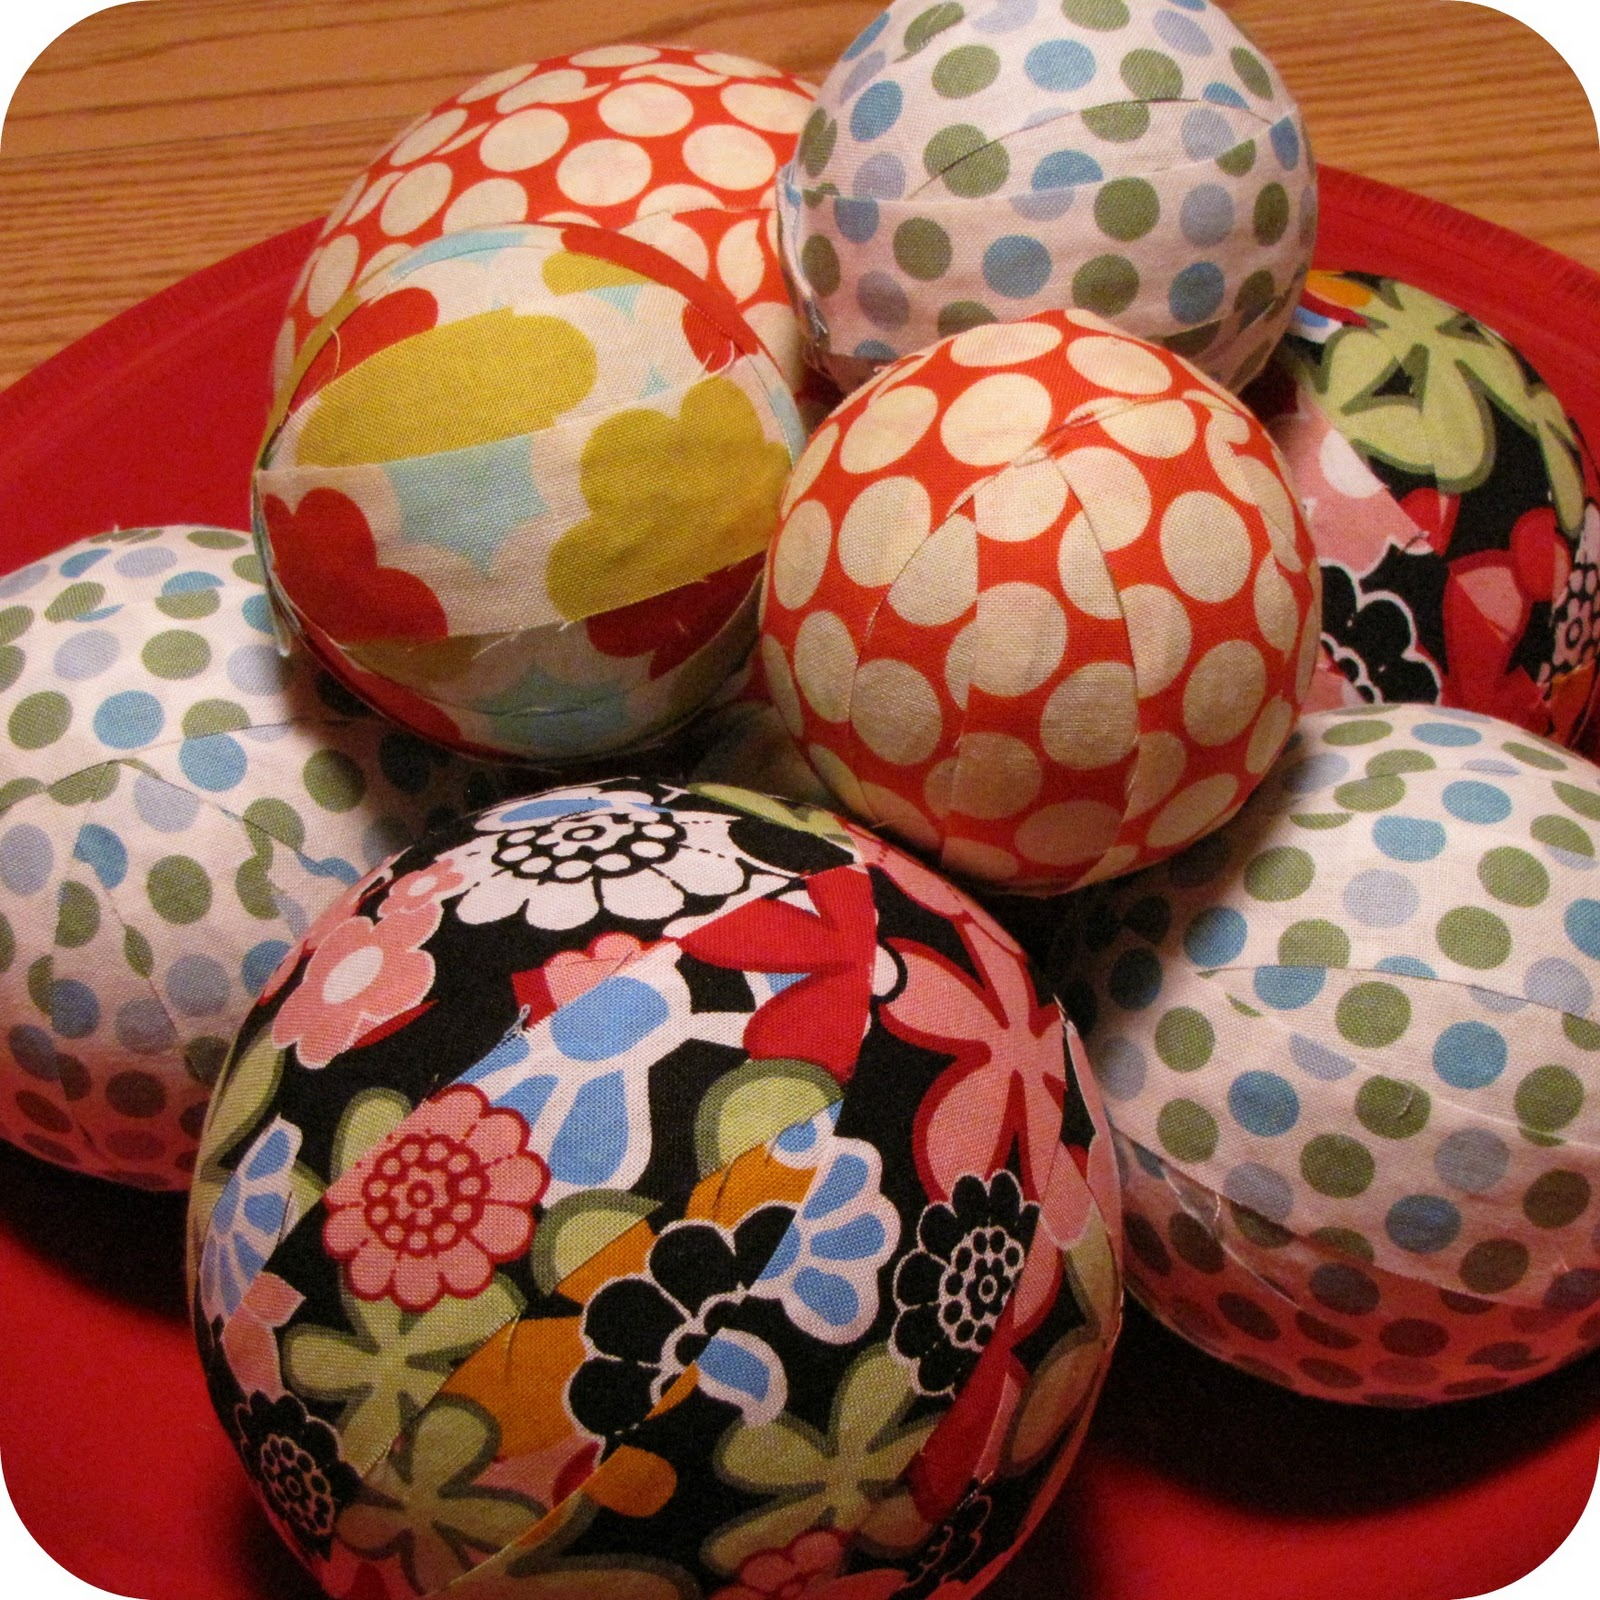 The terpblog craft night fabric balls for Crafts with styrofoam balls for kids